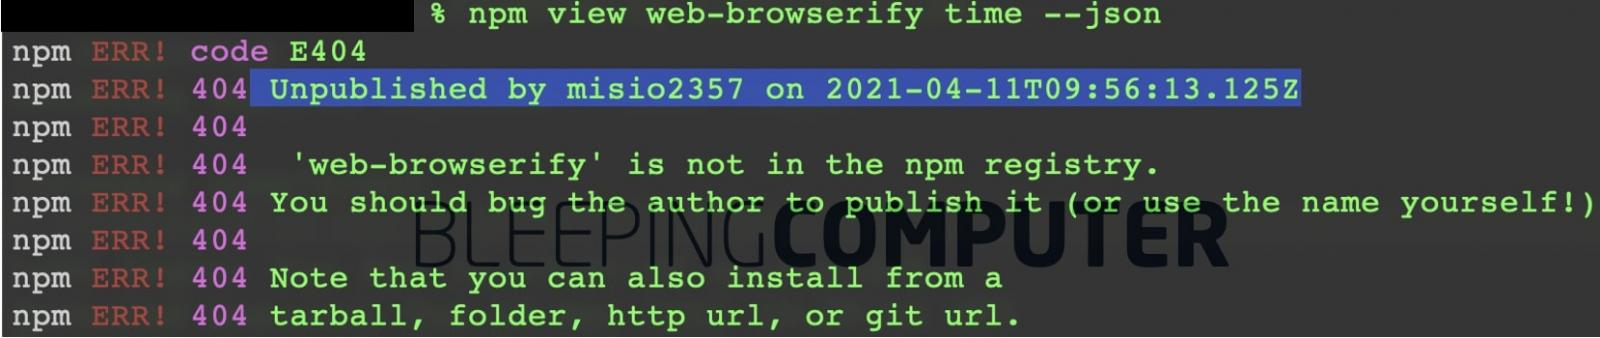 web-browserify pulled